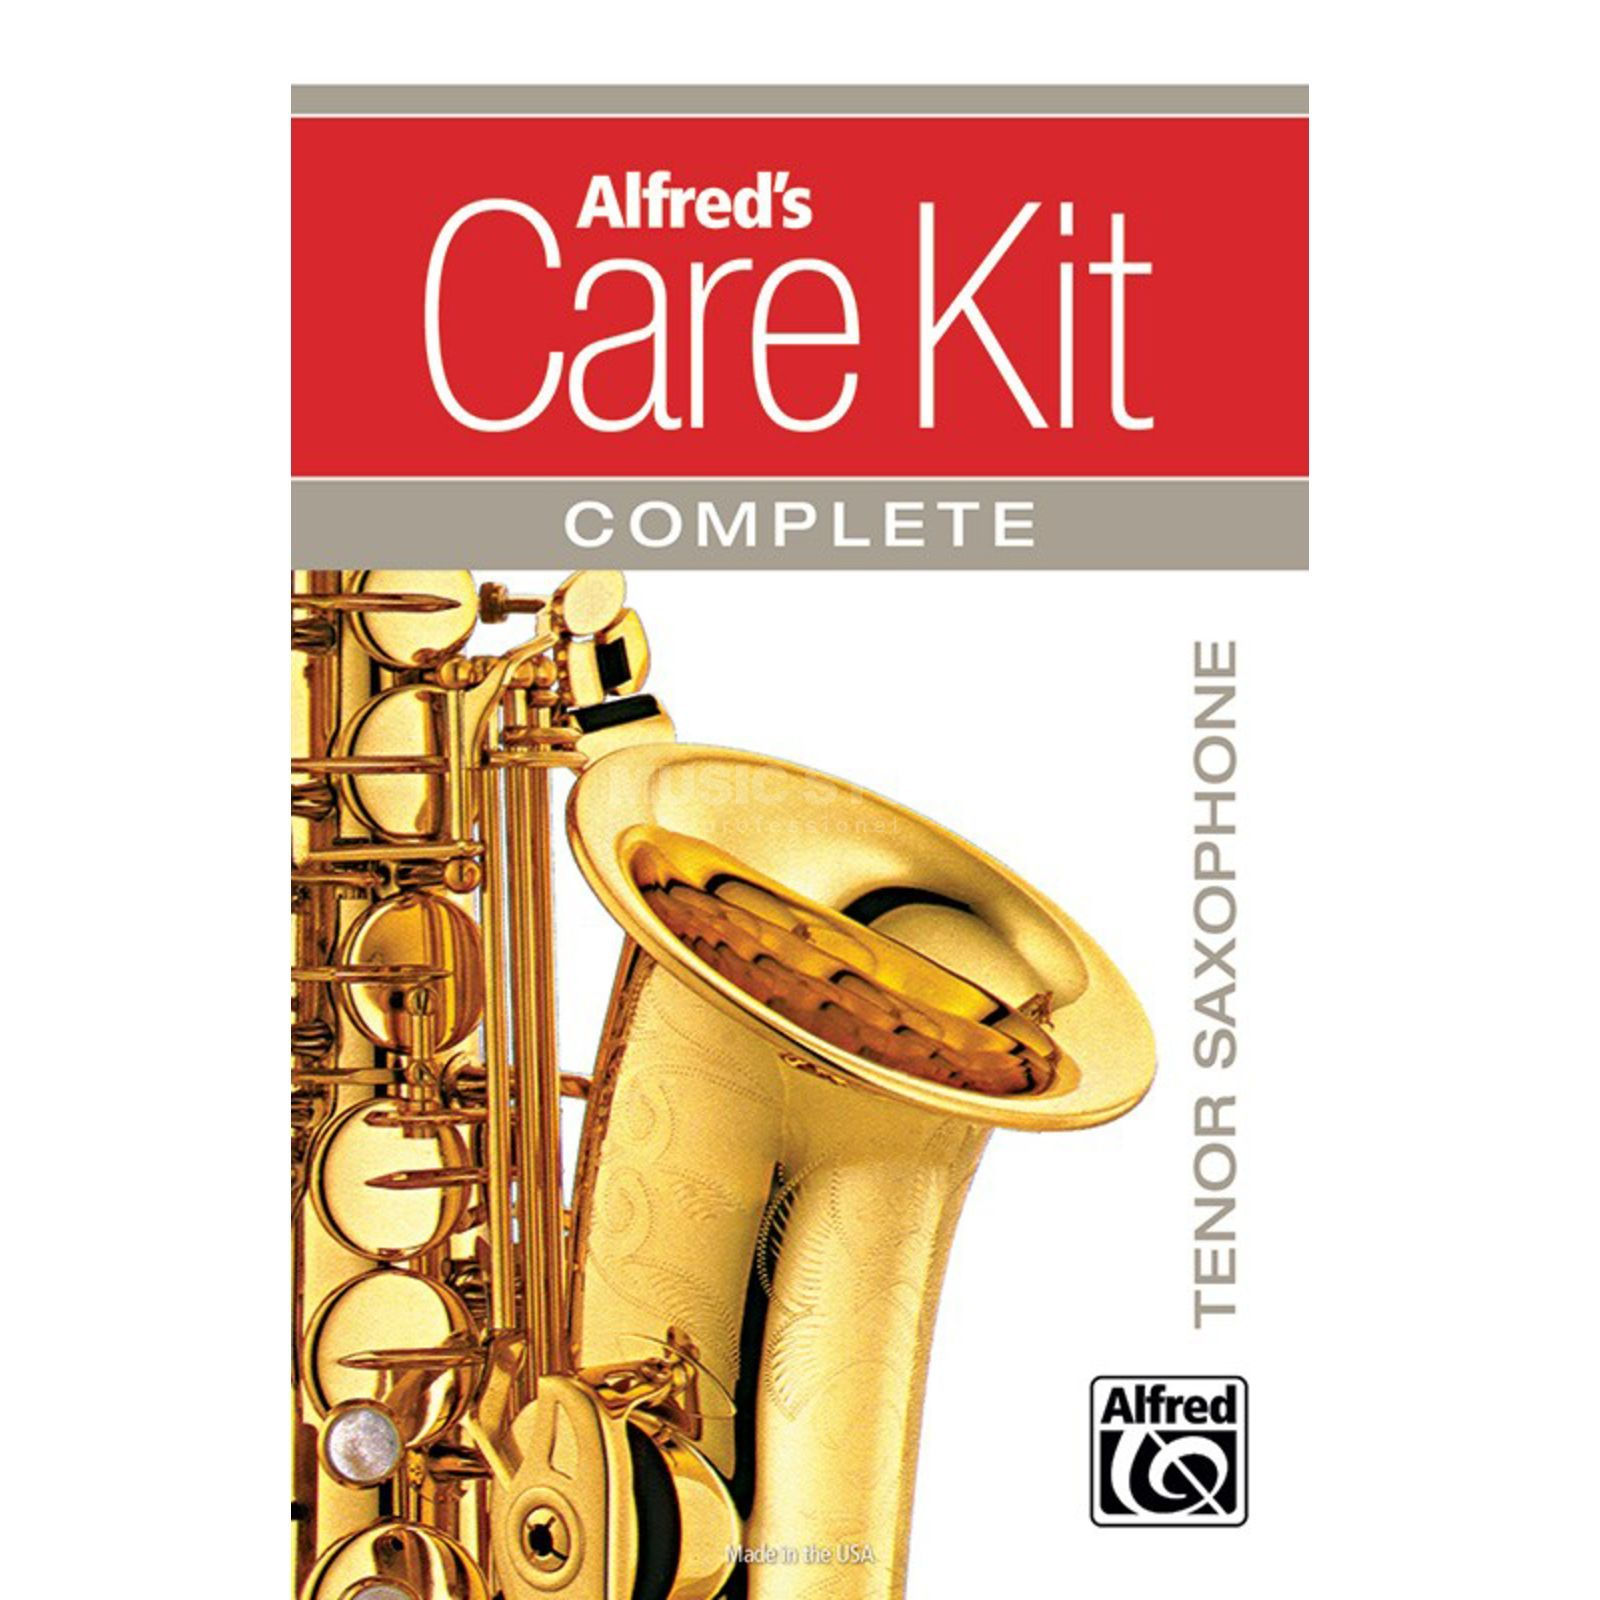 Alfred Music Care Kit Complete: Tenor-Sax  Productafbeelding